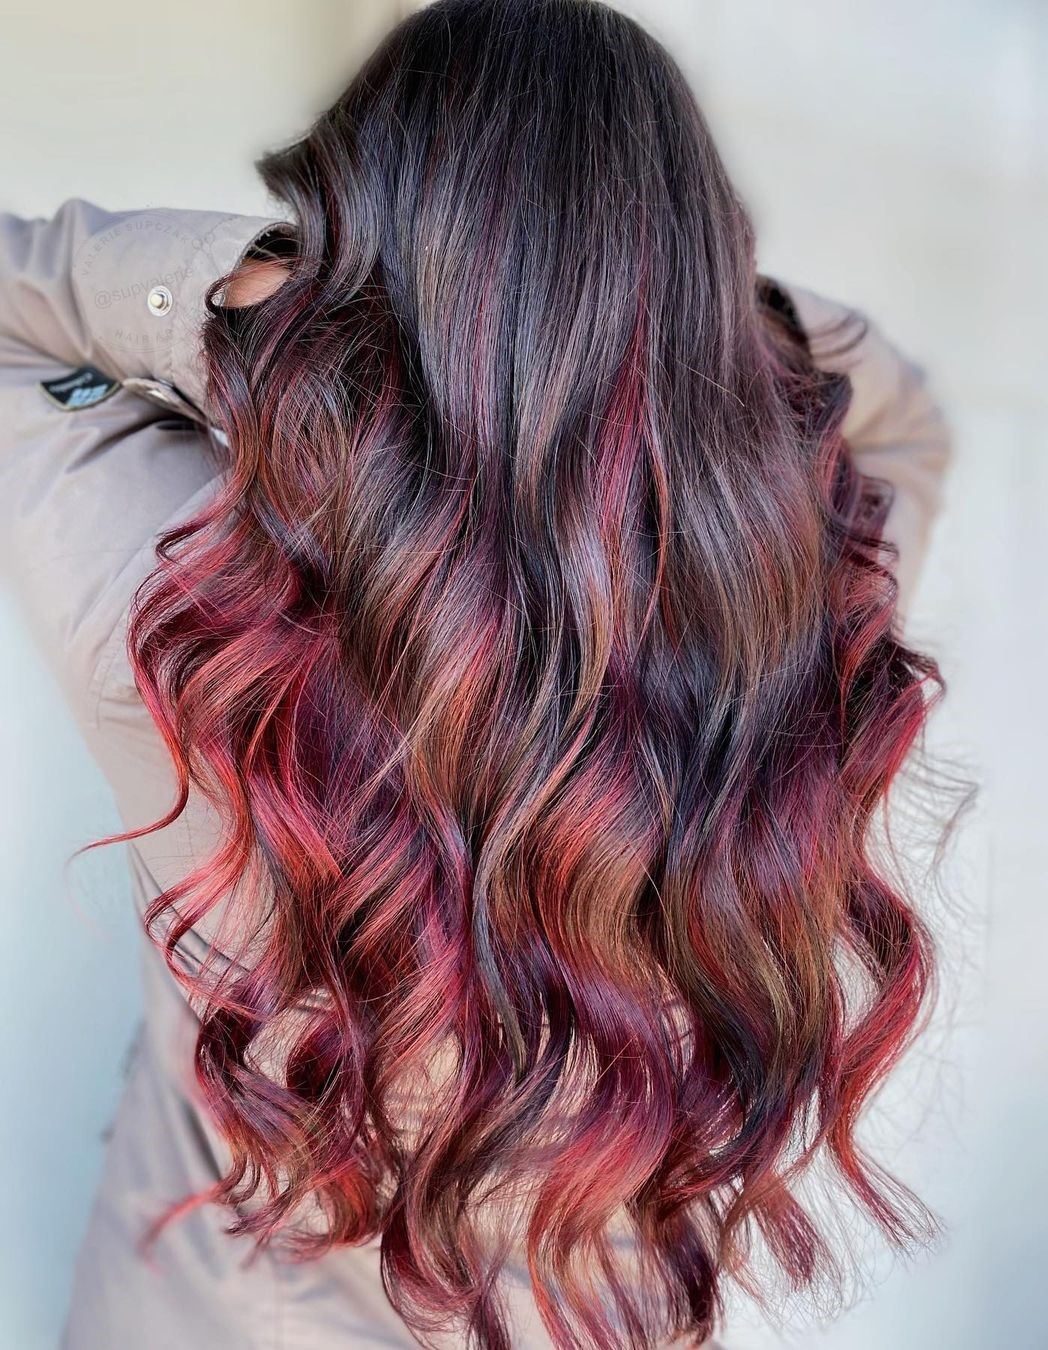 Brown Hair with Red Plum Highlights